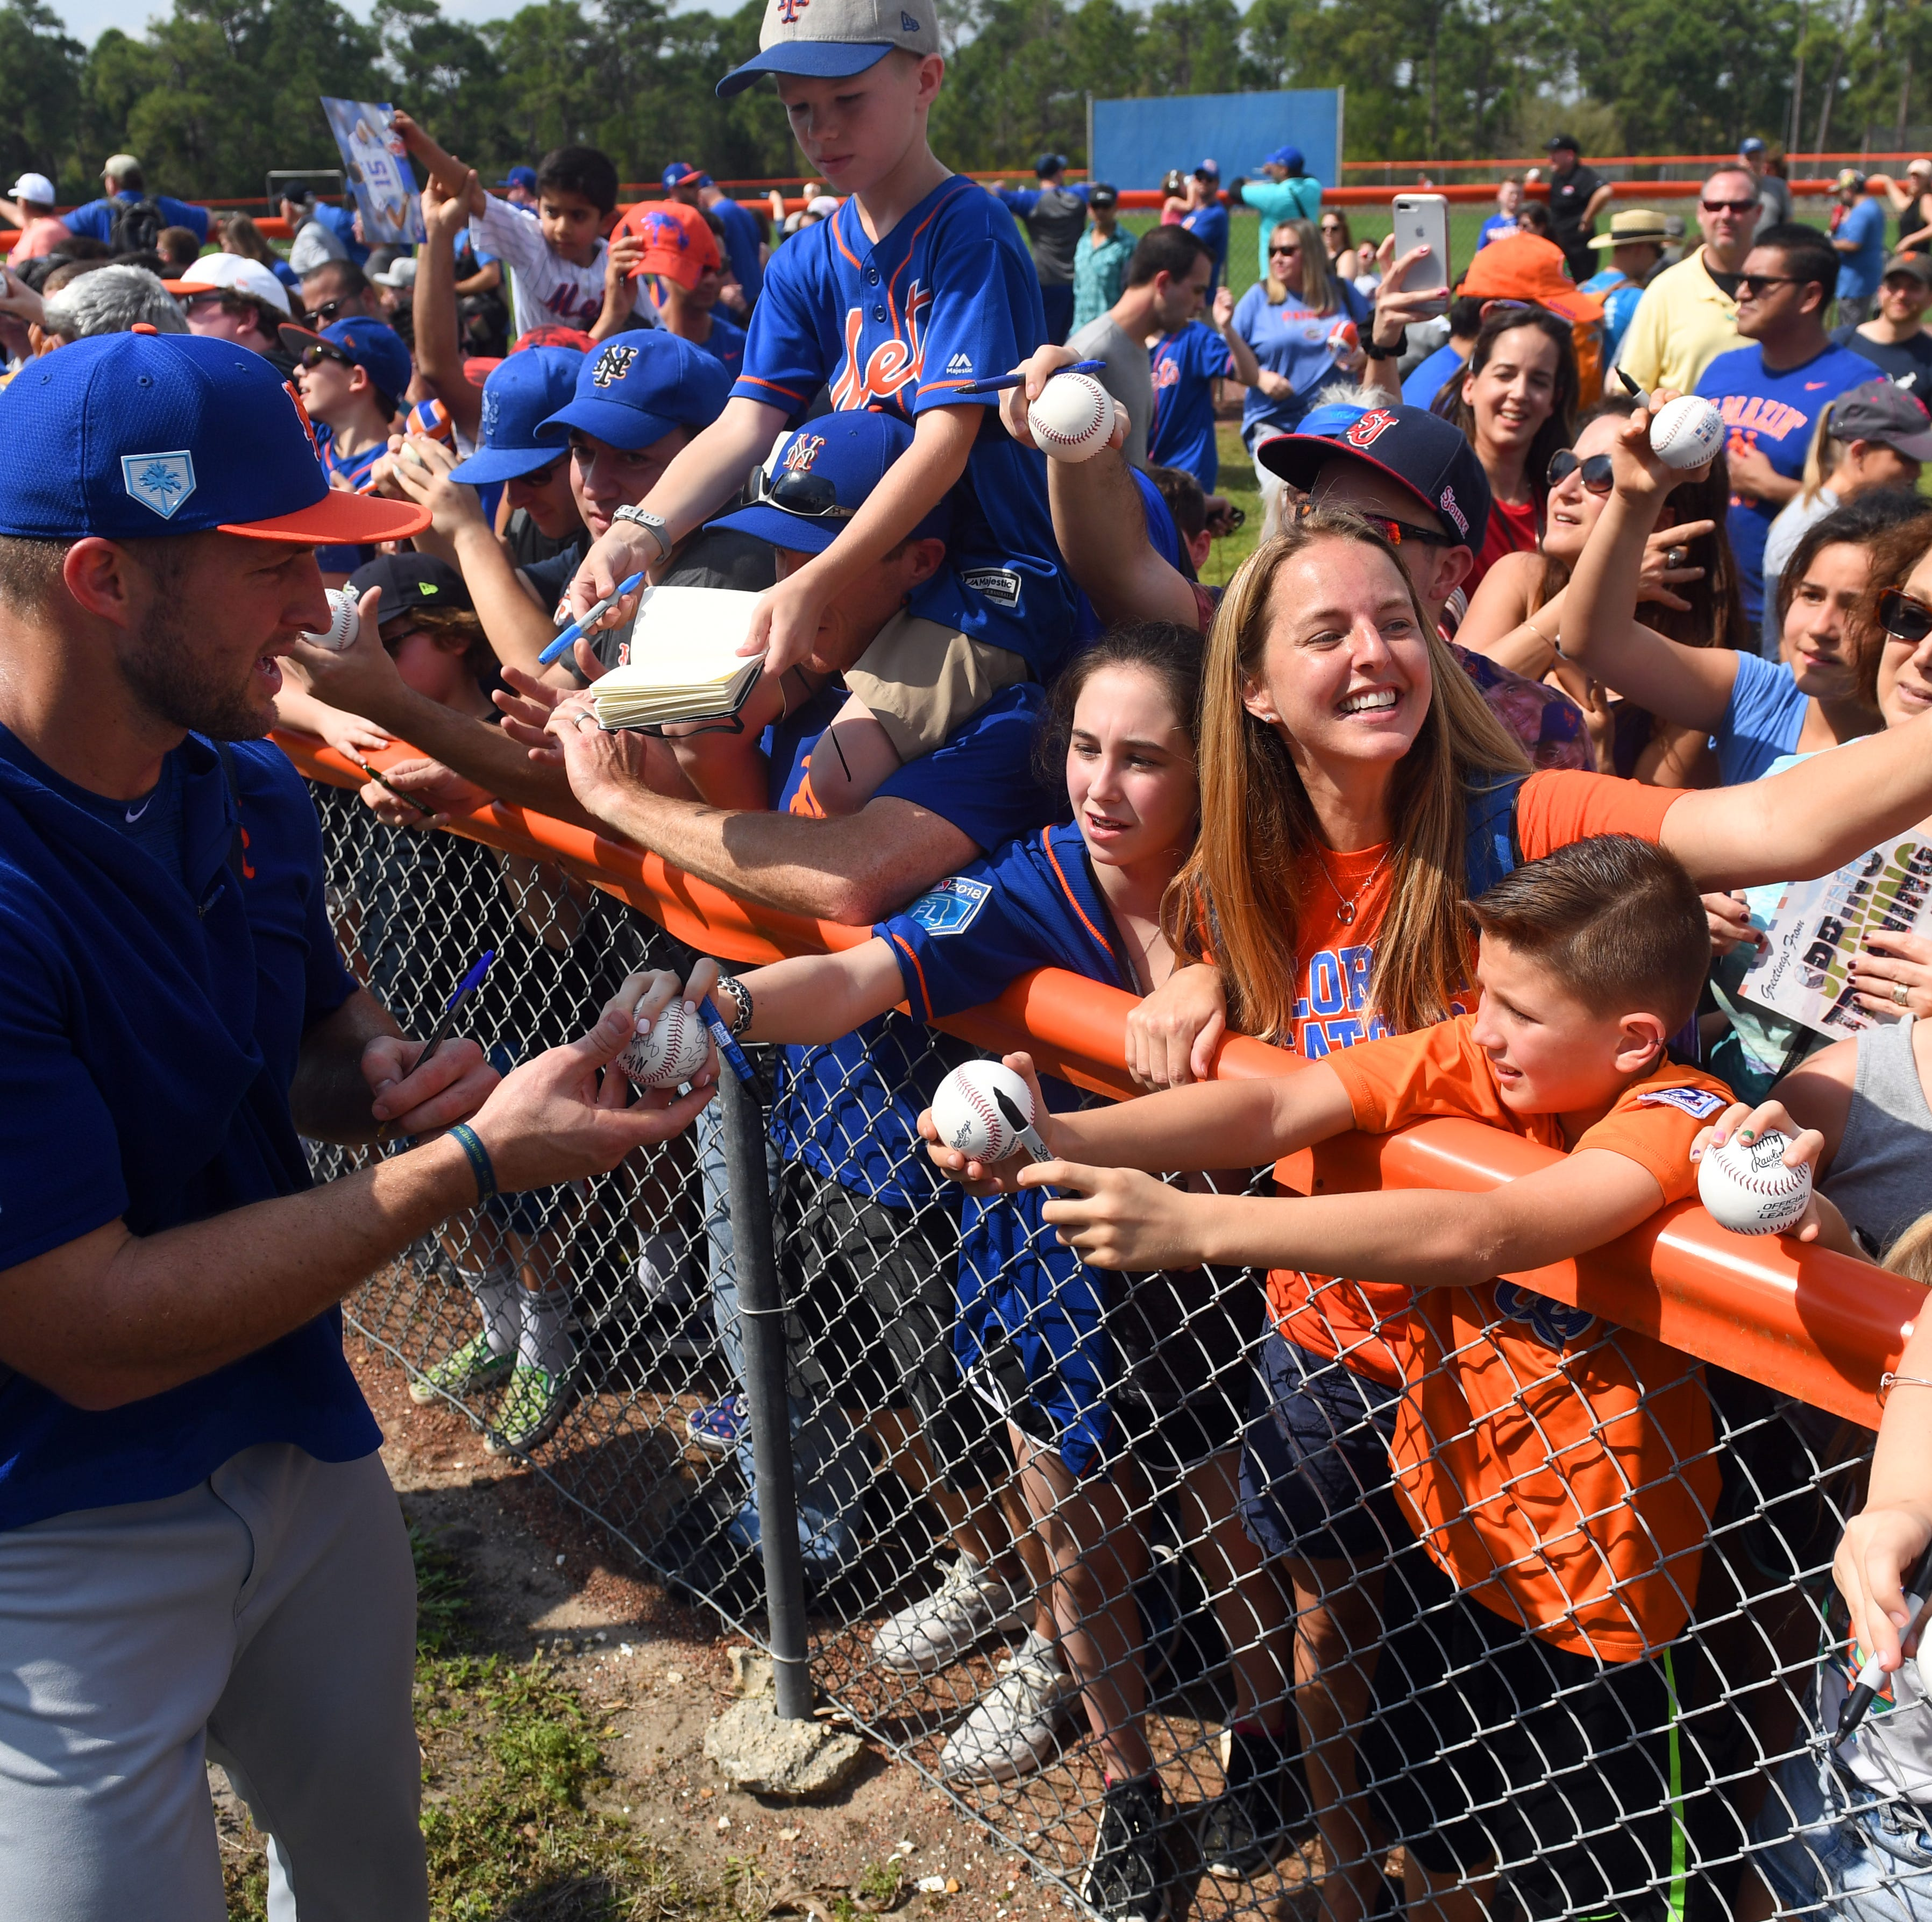 Mets expect big crowd for first spring training game of 2019 season